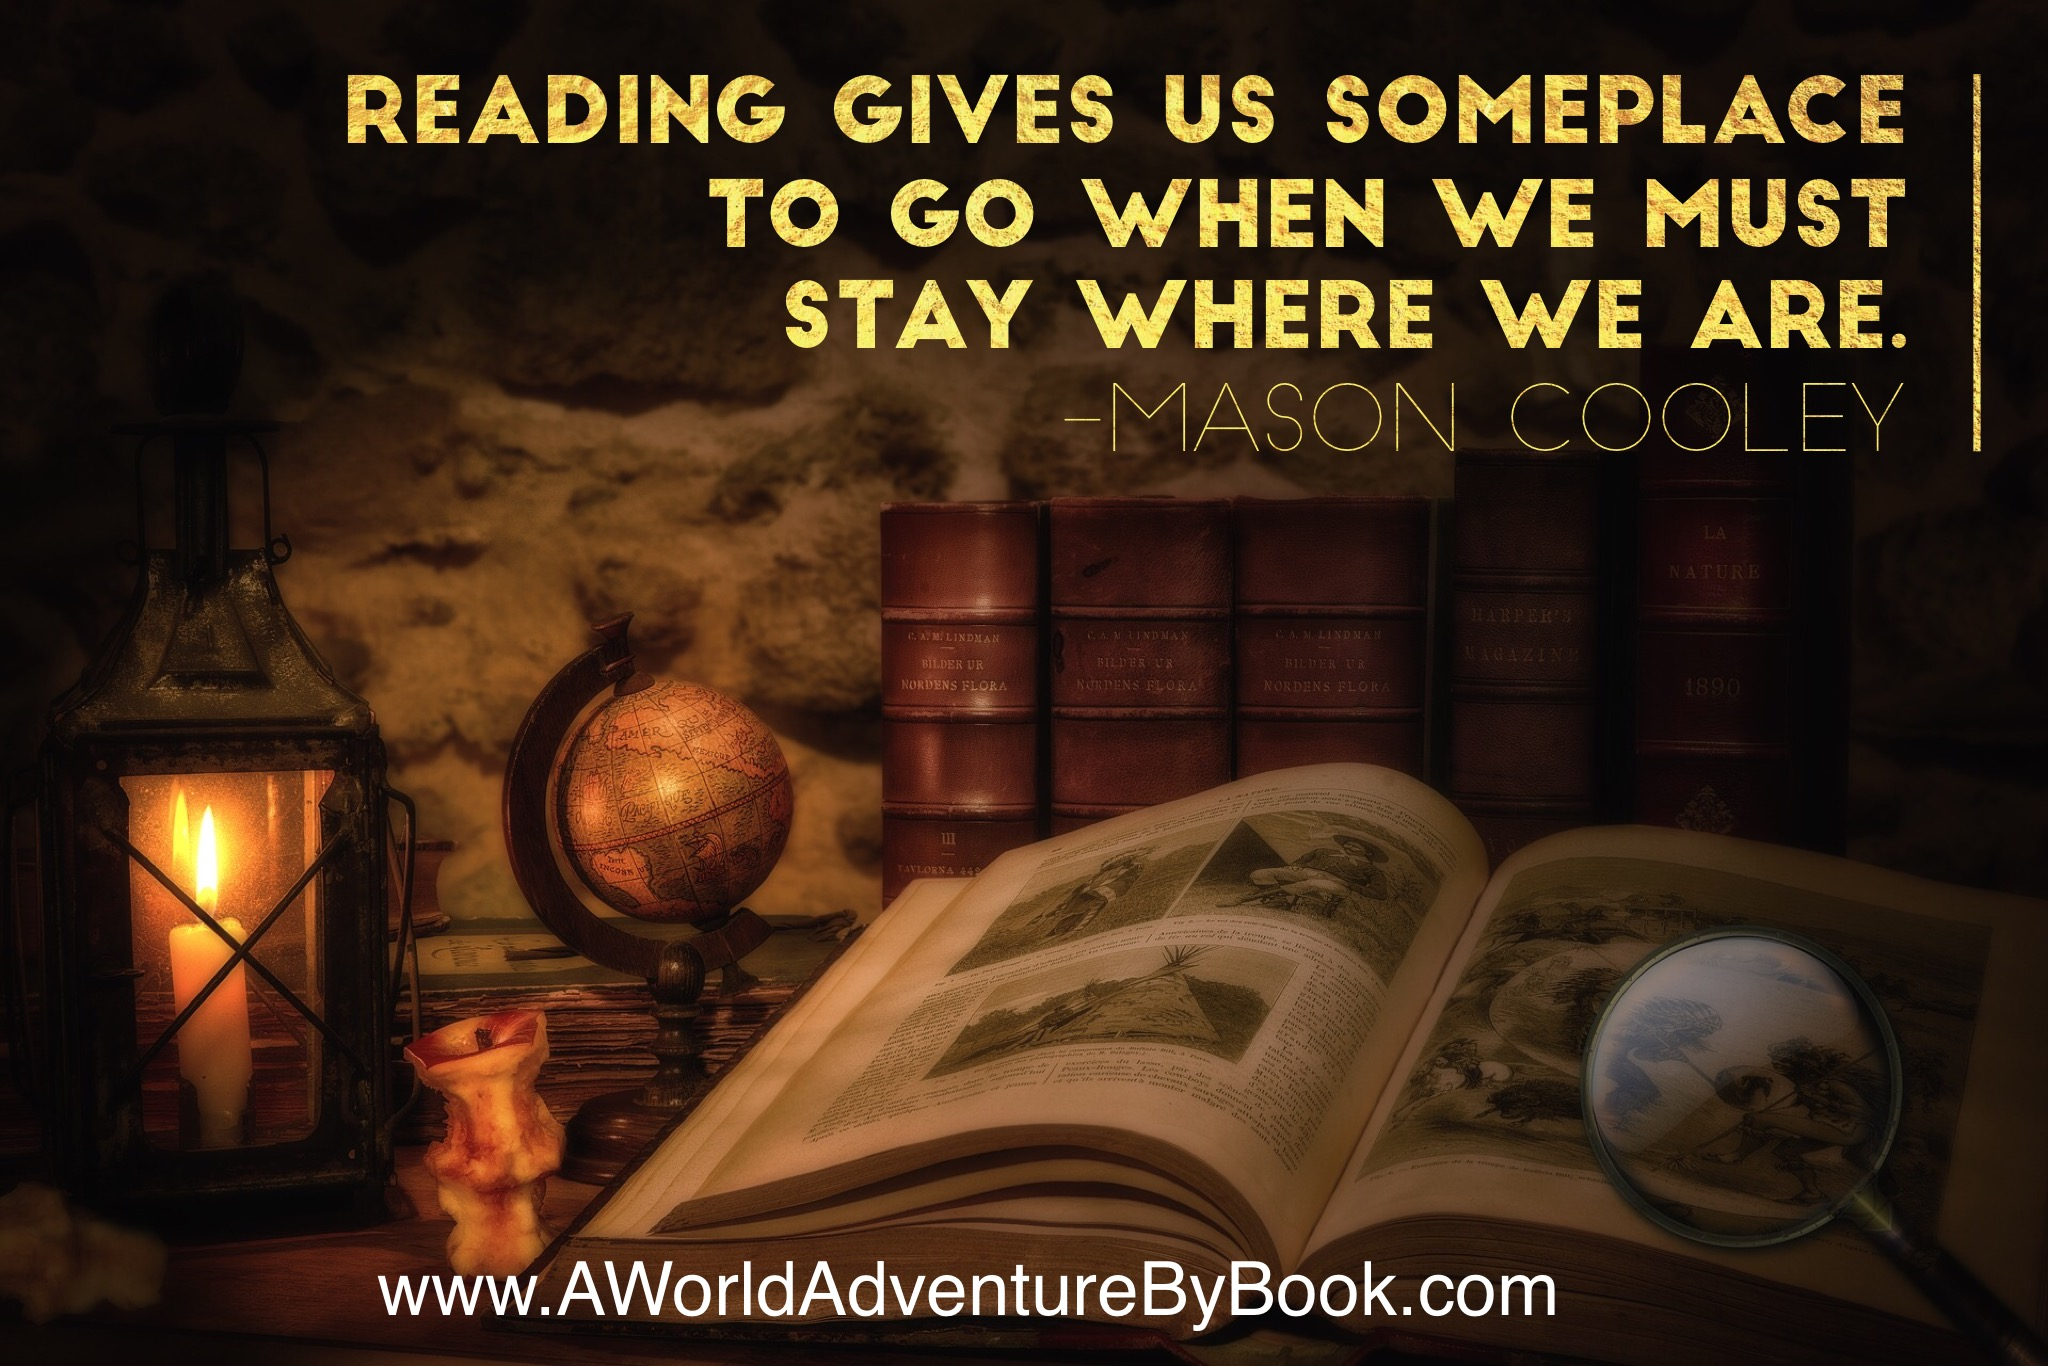 Reading gives us some places to go when we must stay where we are